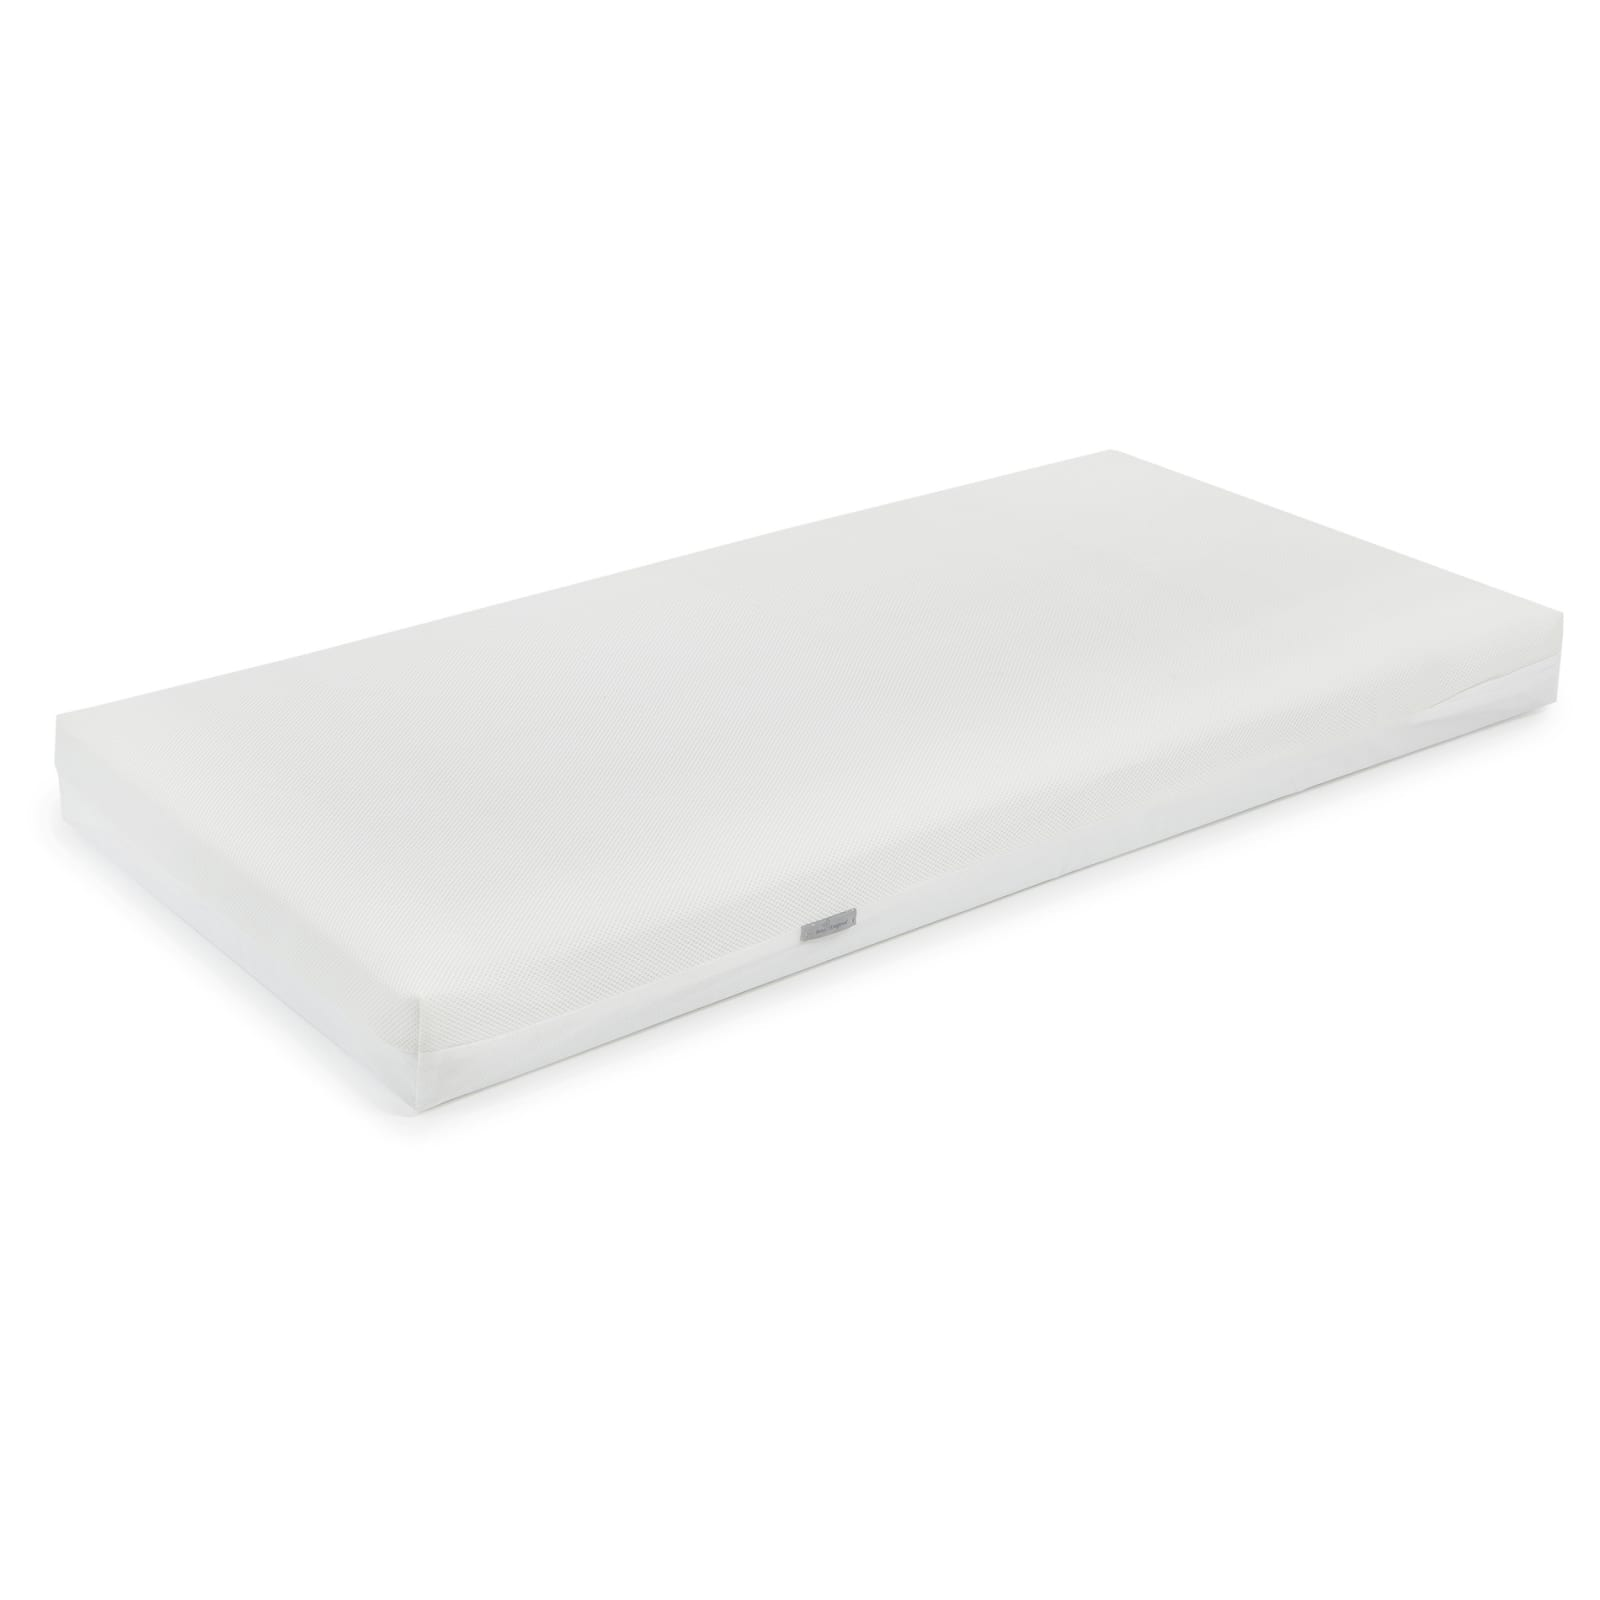 Breathe-Dry Pocket Mattress – Cot Bed – 70x140x10cm product image